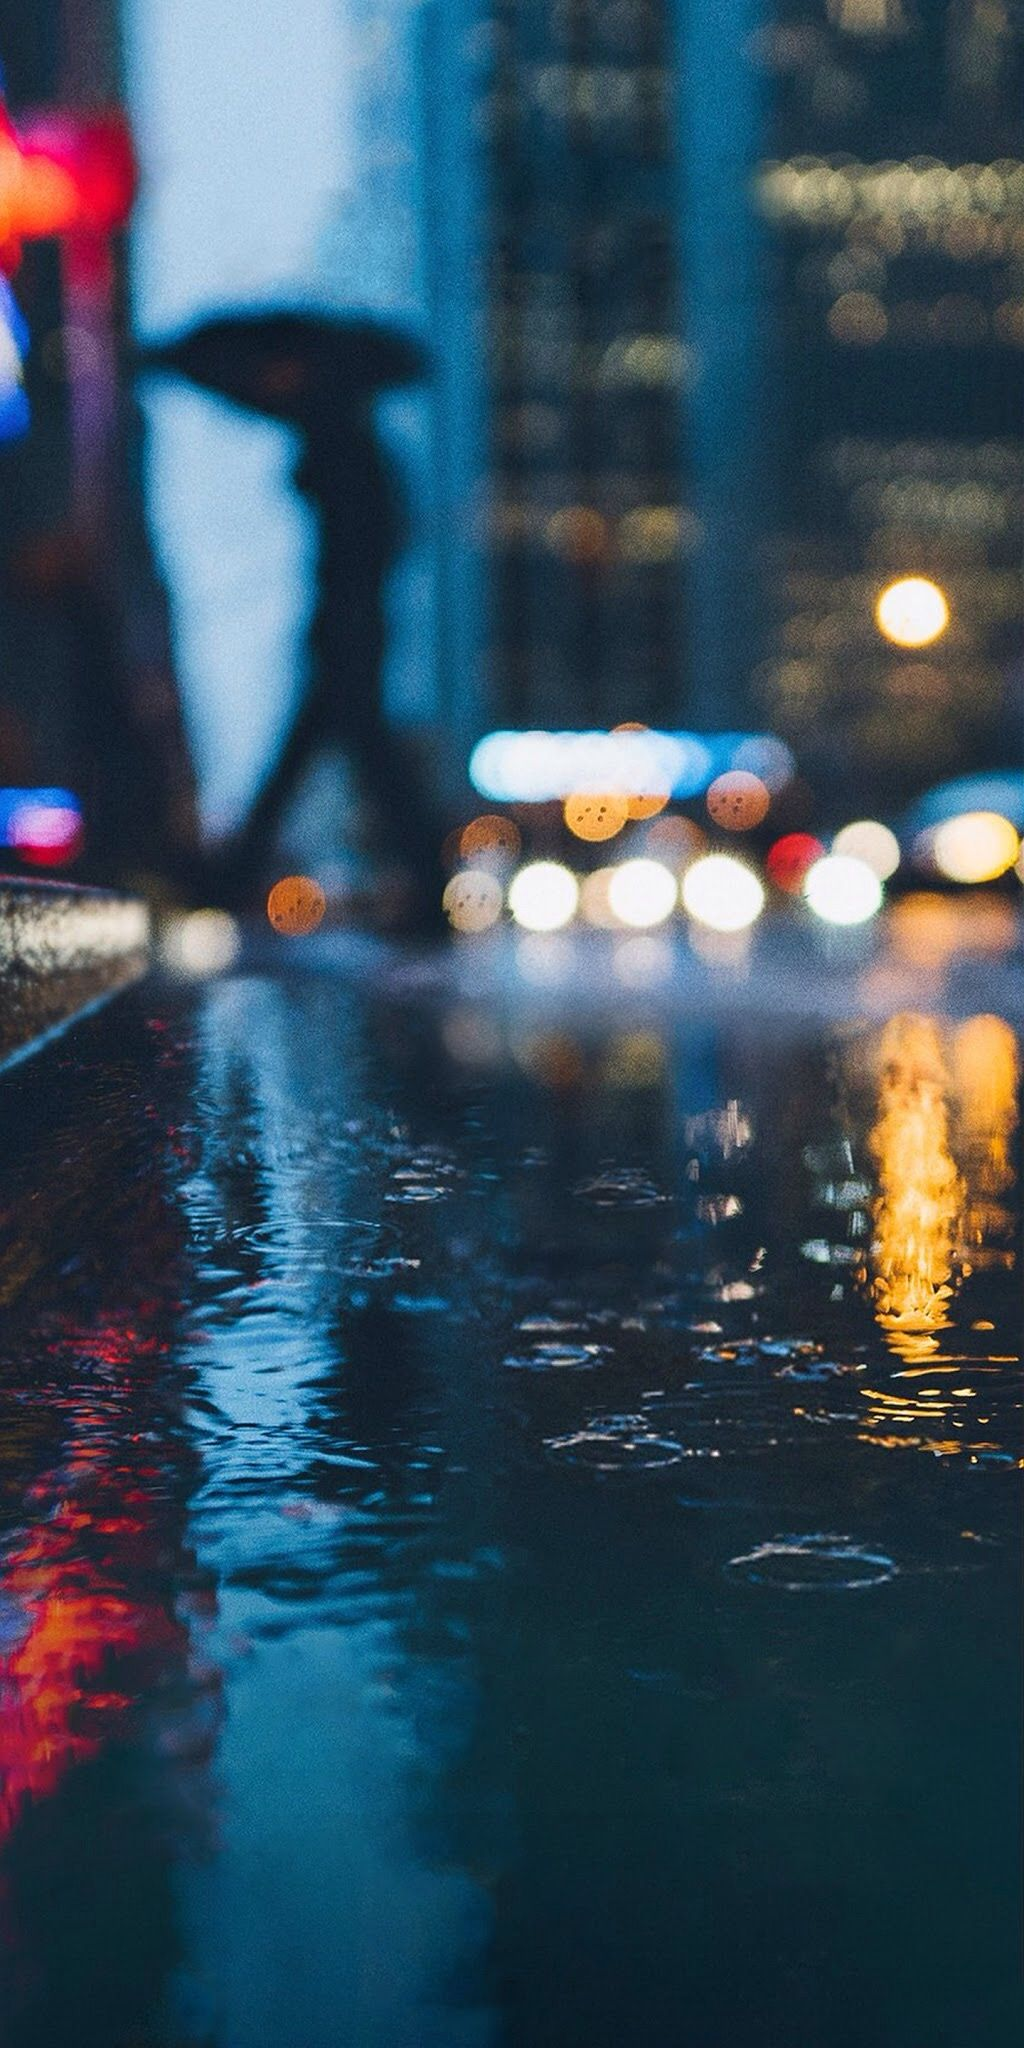 Priroda In 2020 Google Pixel Wallpaper Rain Wallpapers Rainy Wallpaper